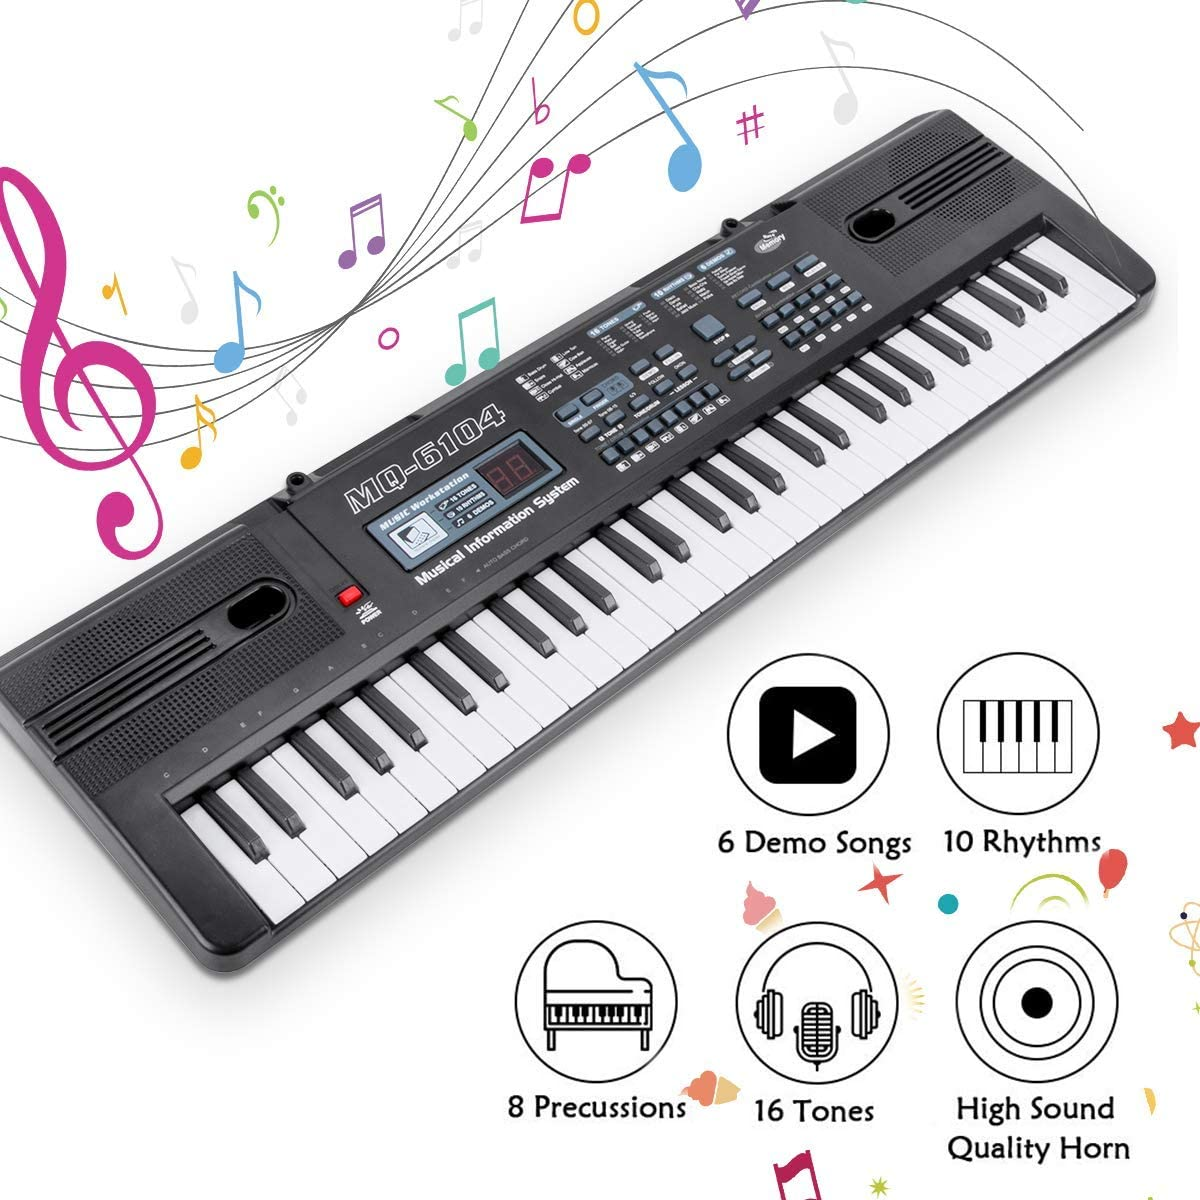 RenFox Piano Keyboard 61-Key Portable Keyboard Piano for Kids with Microphone&USB Cable Toy for Kids Boys Girls